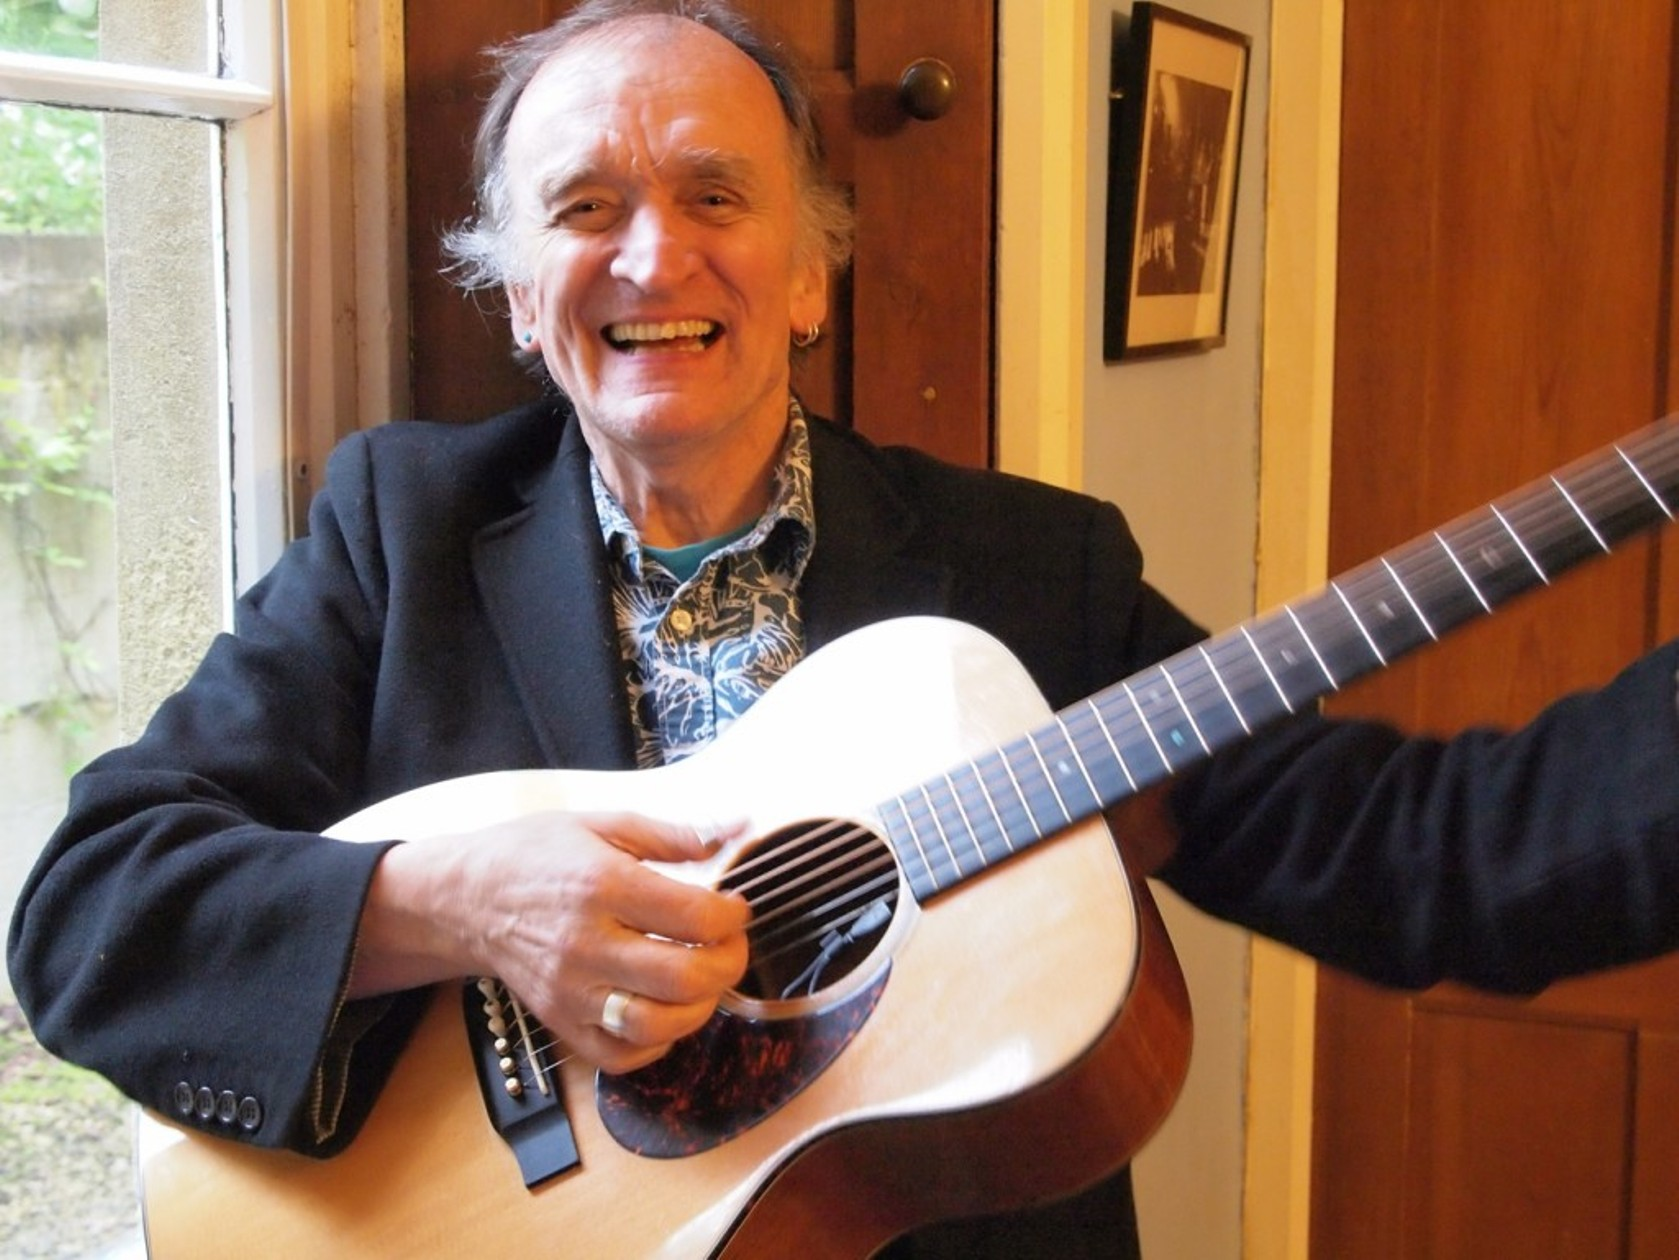 Headline act at BAMfest 2014 Martin Carthy